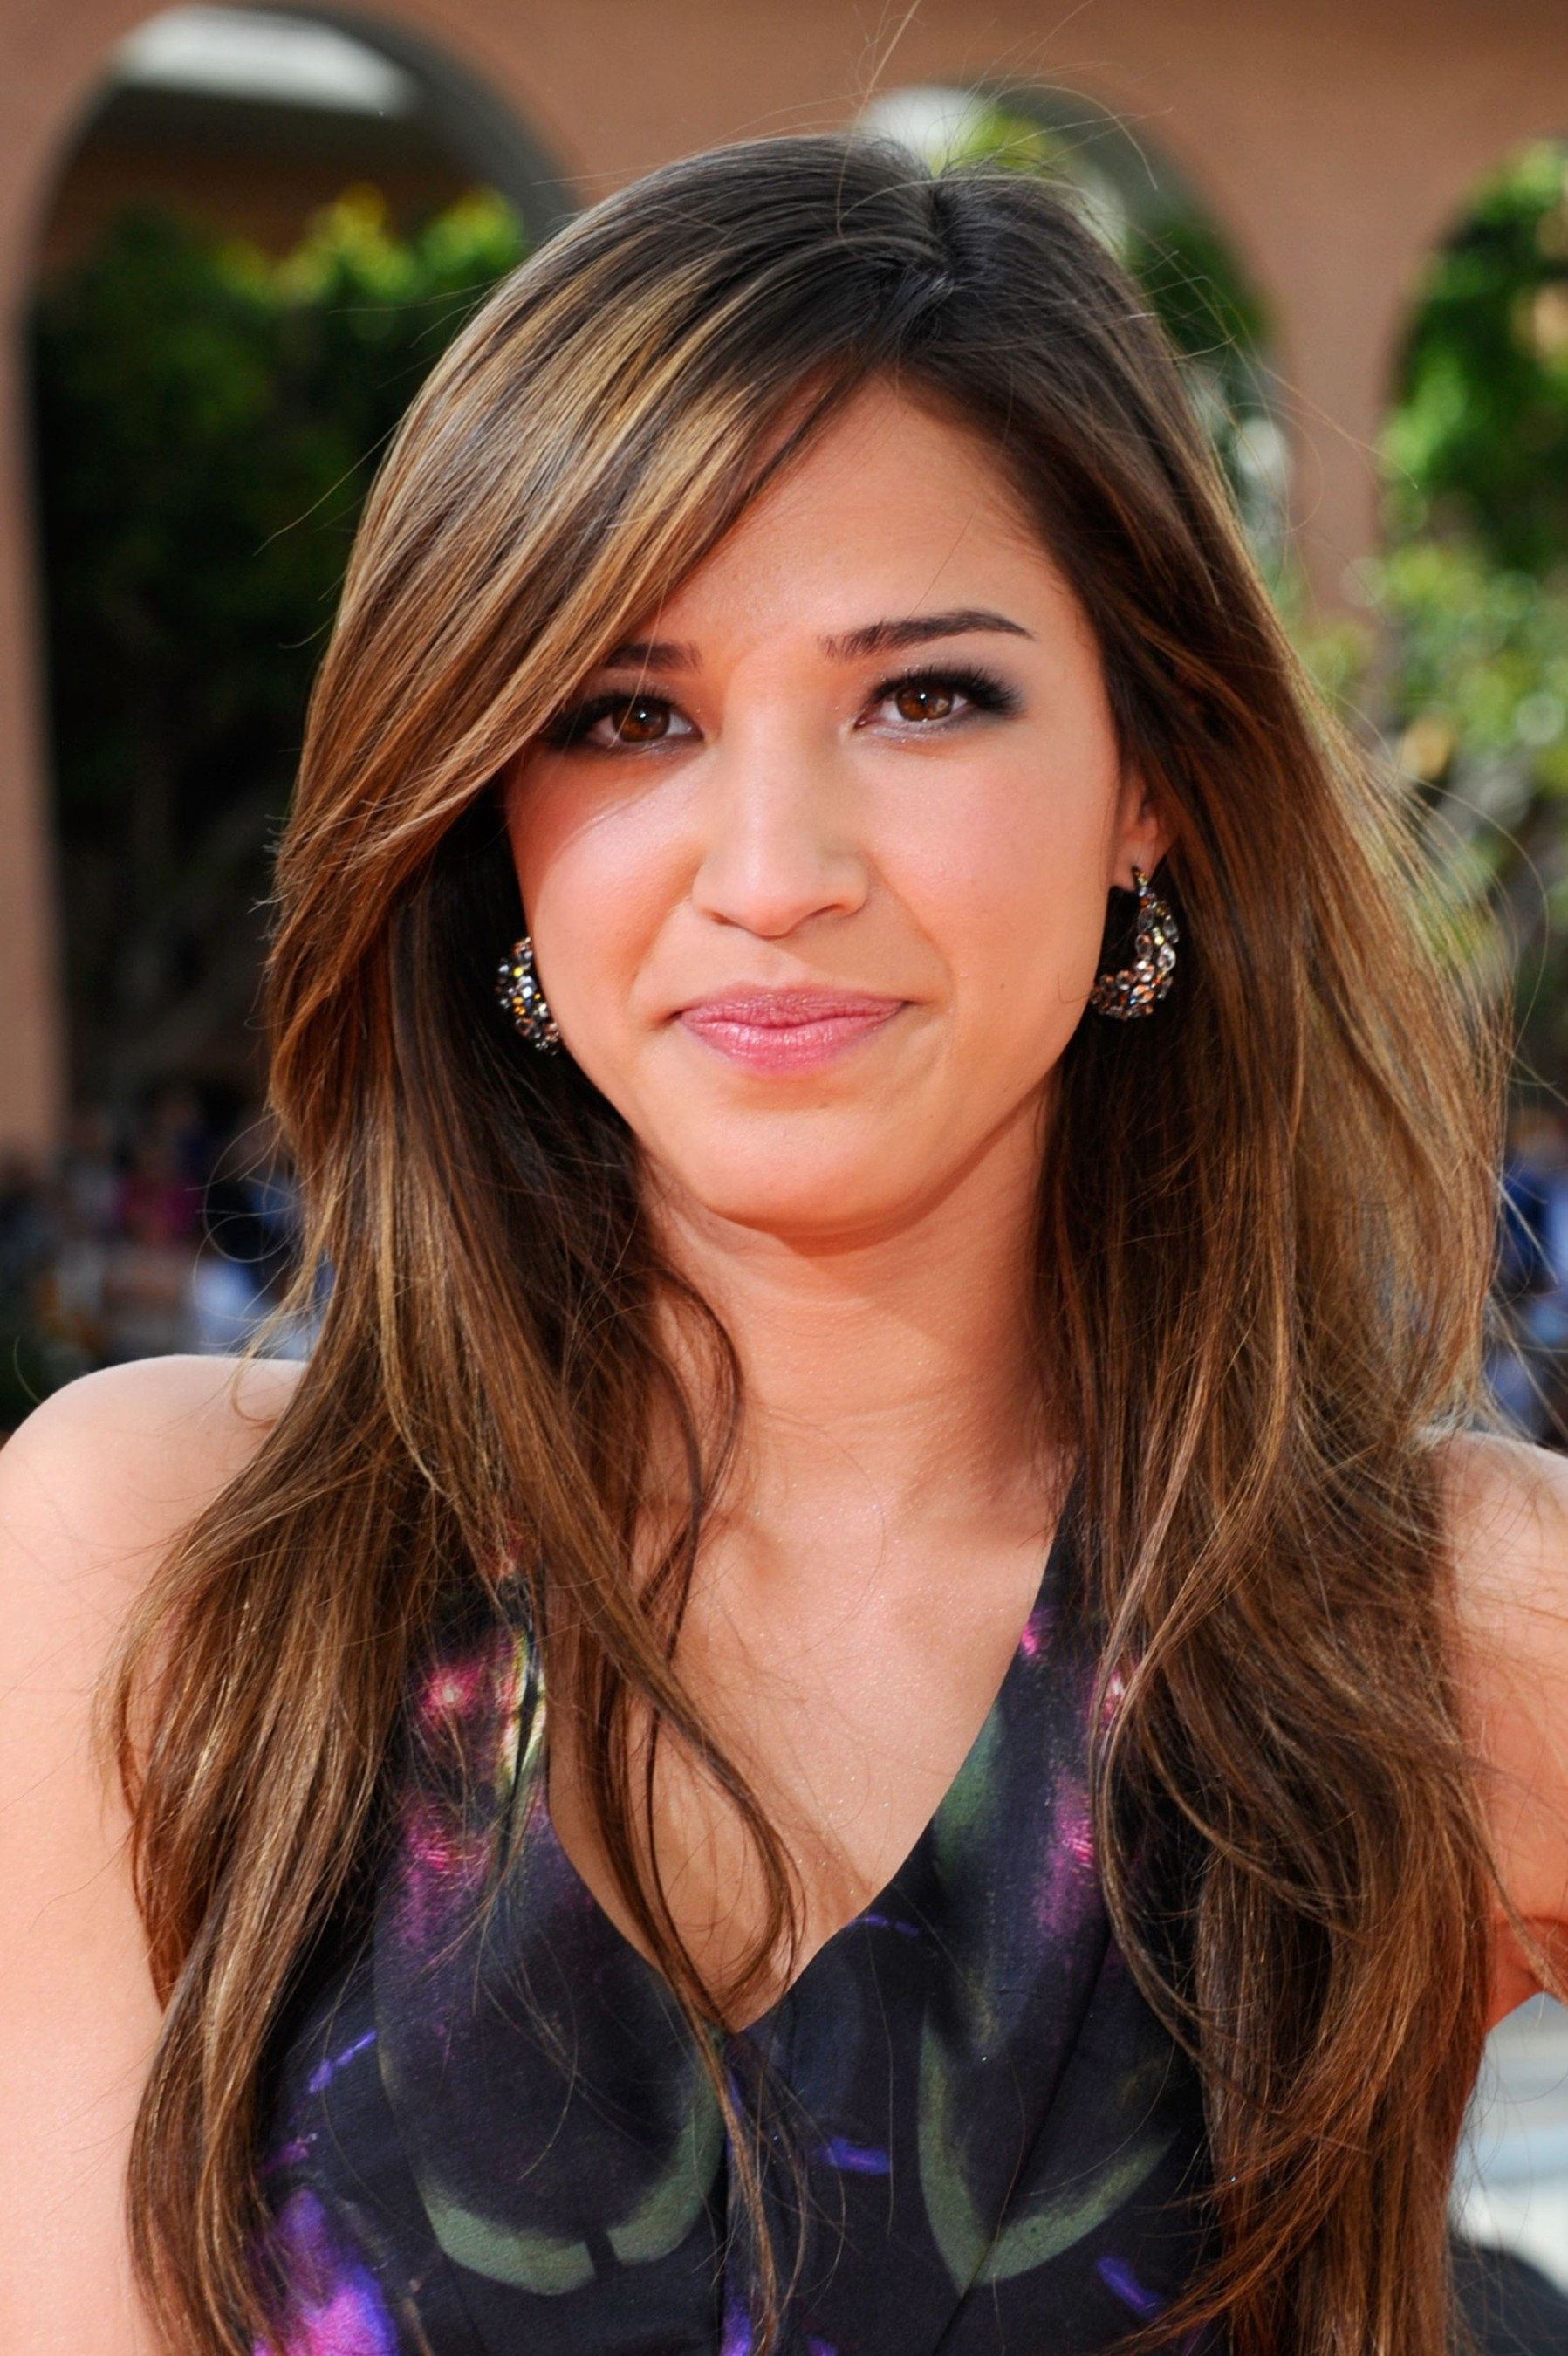 kelsey chow images